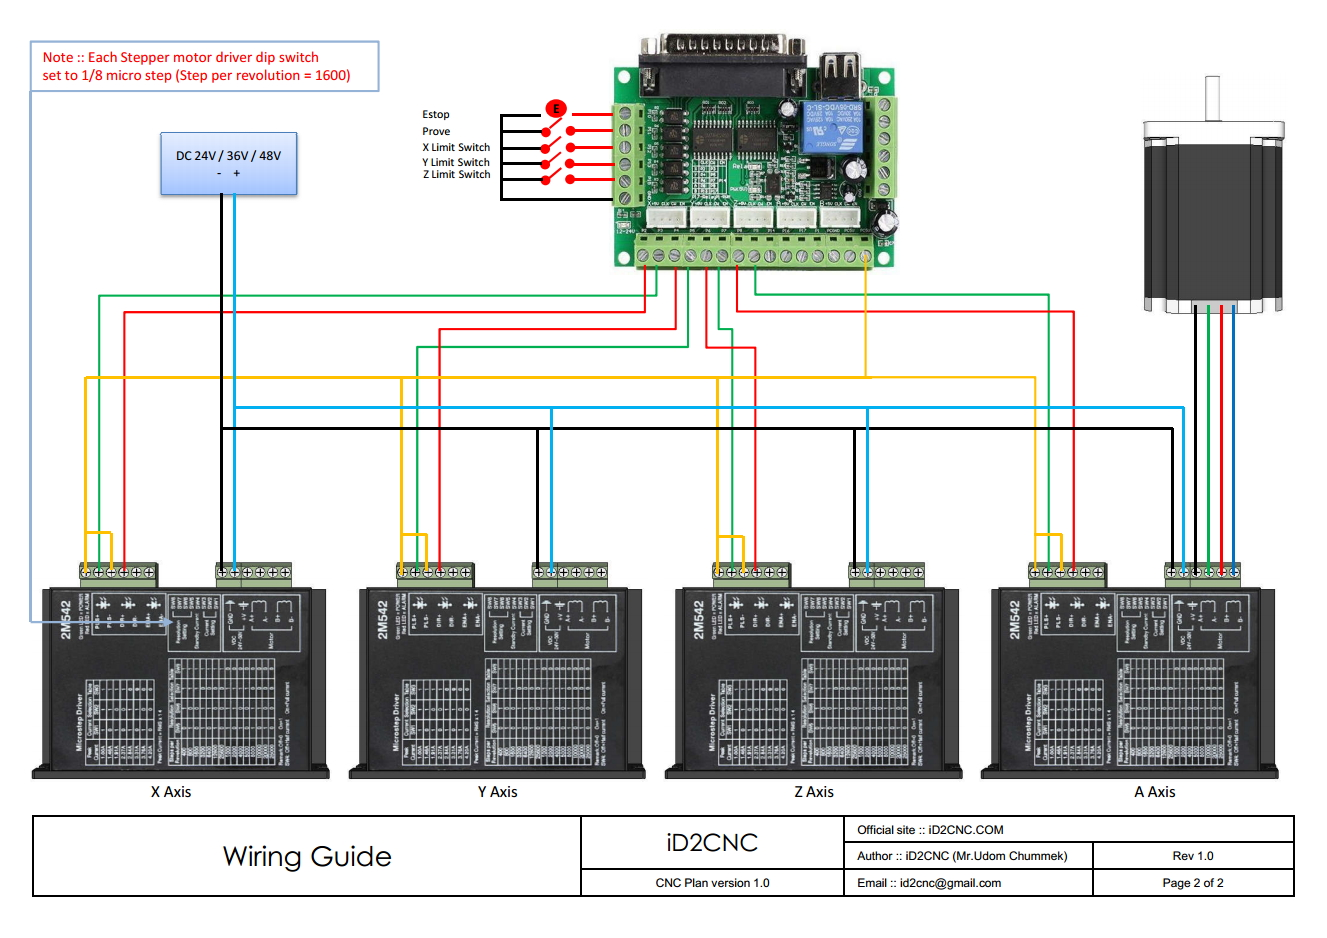 Cnc Wiring Schematic Starting Know About Wiring Diagram \u2022 CNC Project  Plans Cnc Wiring Schematic